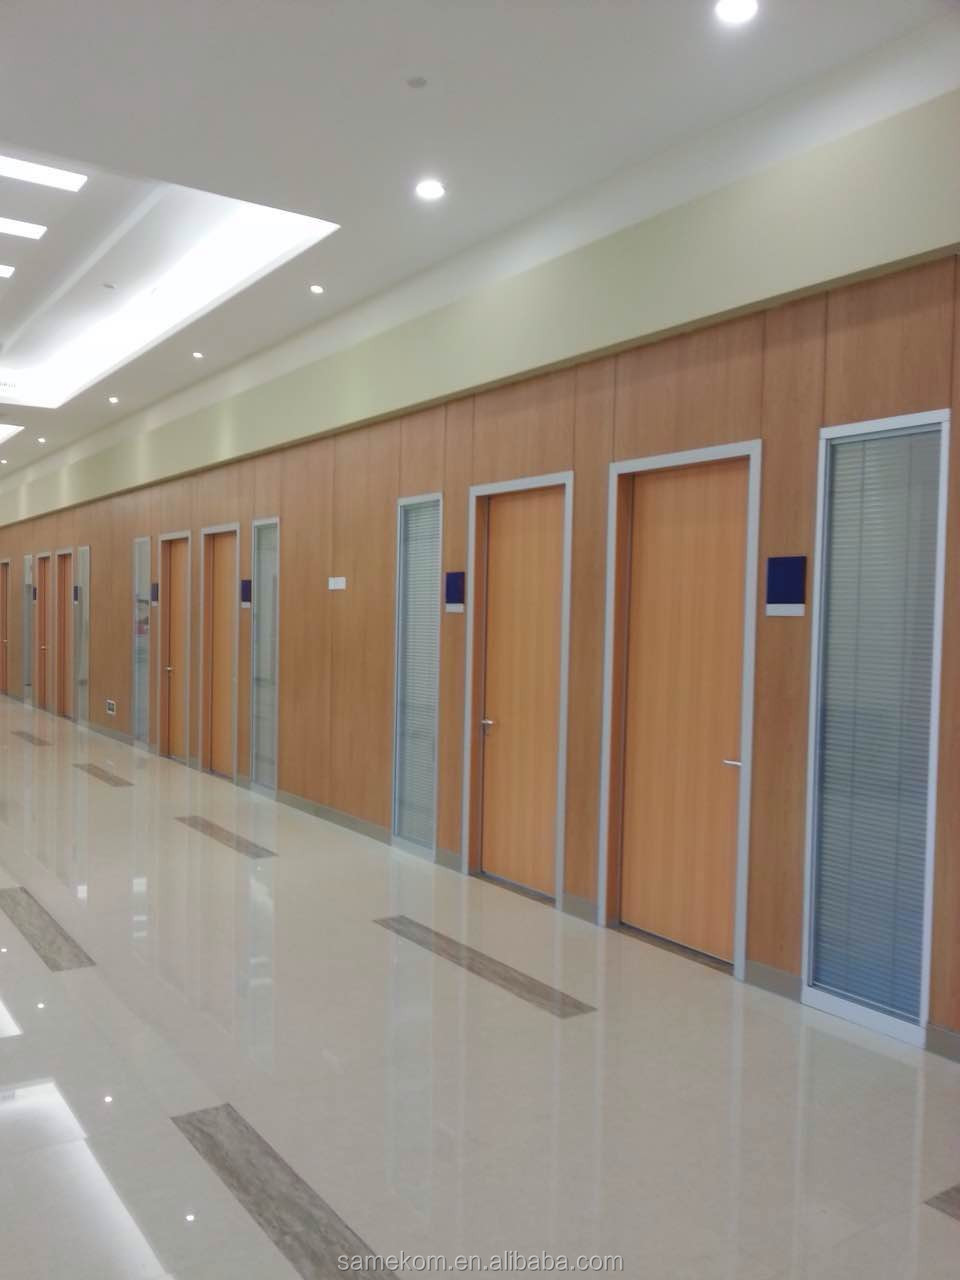 Glass office doors manufacturers - Customized In Design Office Doors Glass Inserts Buy Office Doors Glass Inserts Customized In Design Office Doors Office Door Product On Alibaba Com